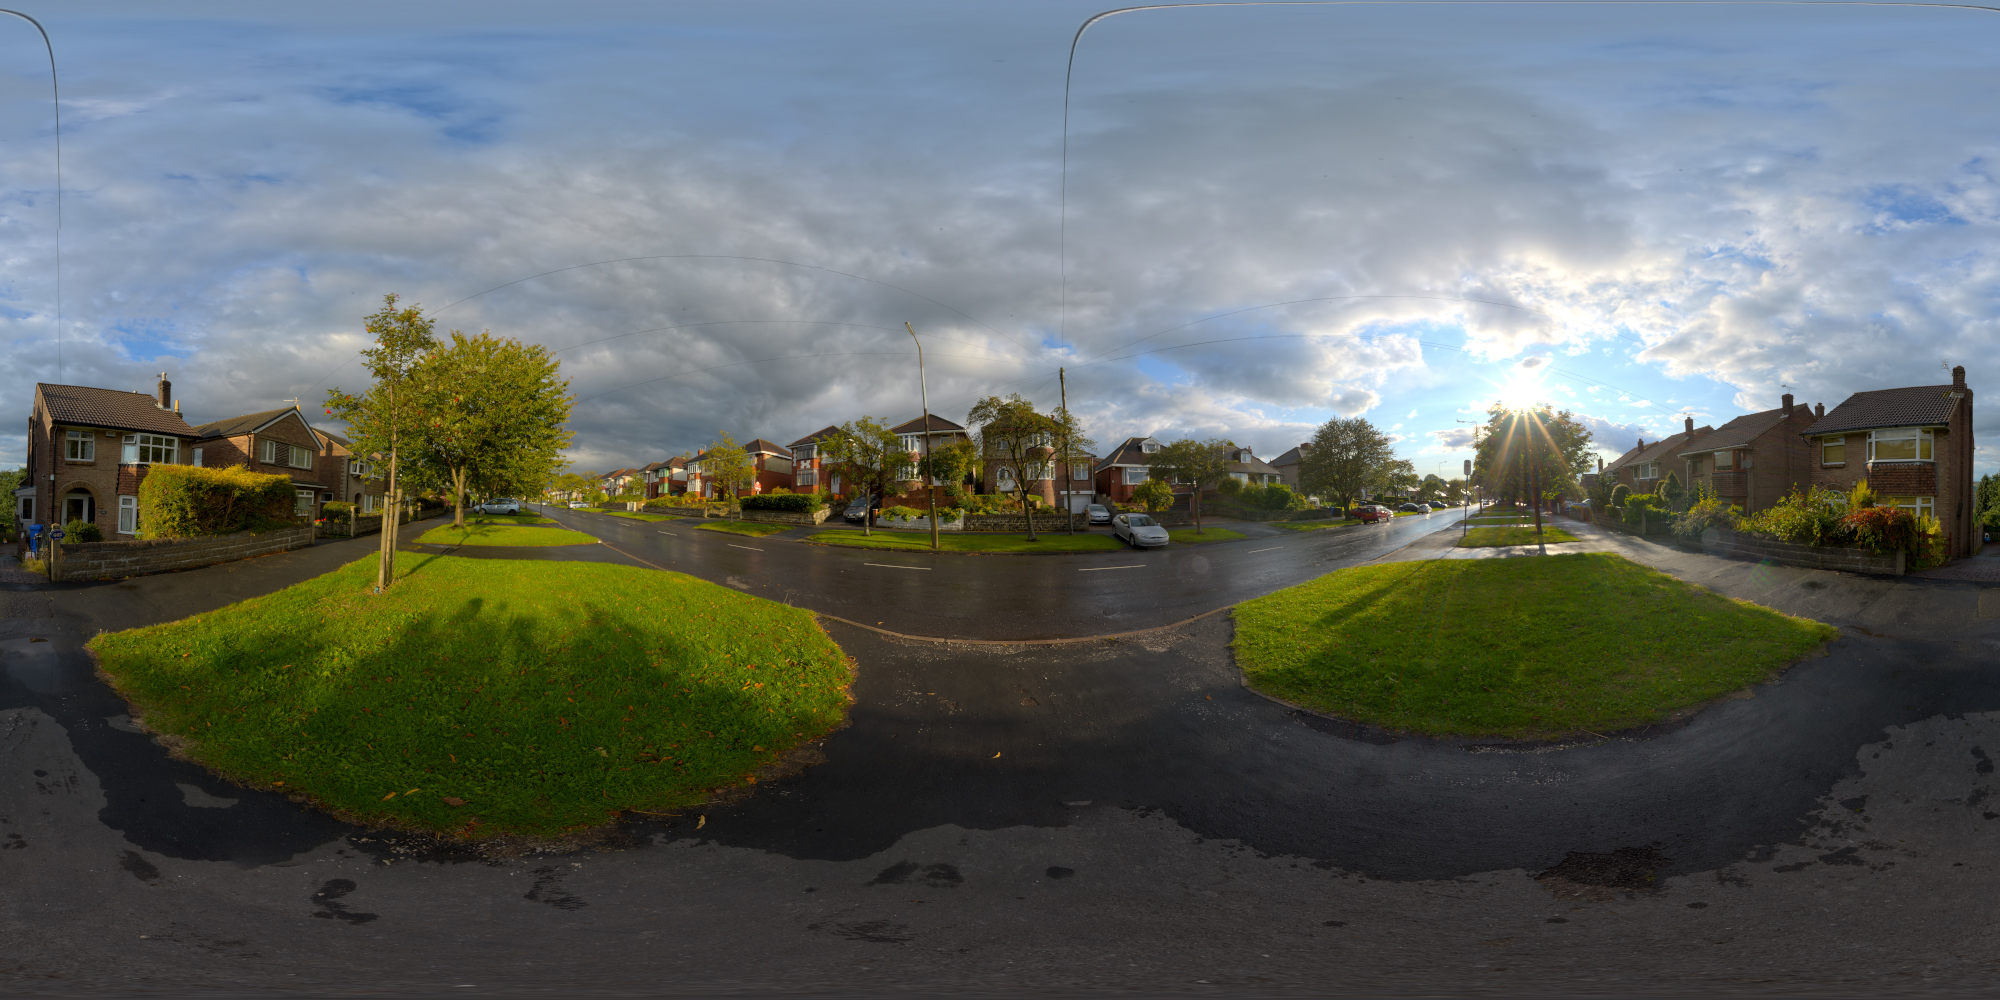 Panocapture streetsunny wet road in cloudy sunshine spherical hdri map thecheapjerseys Image collections